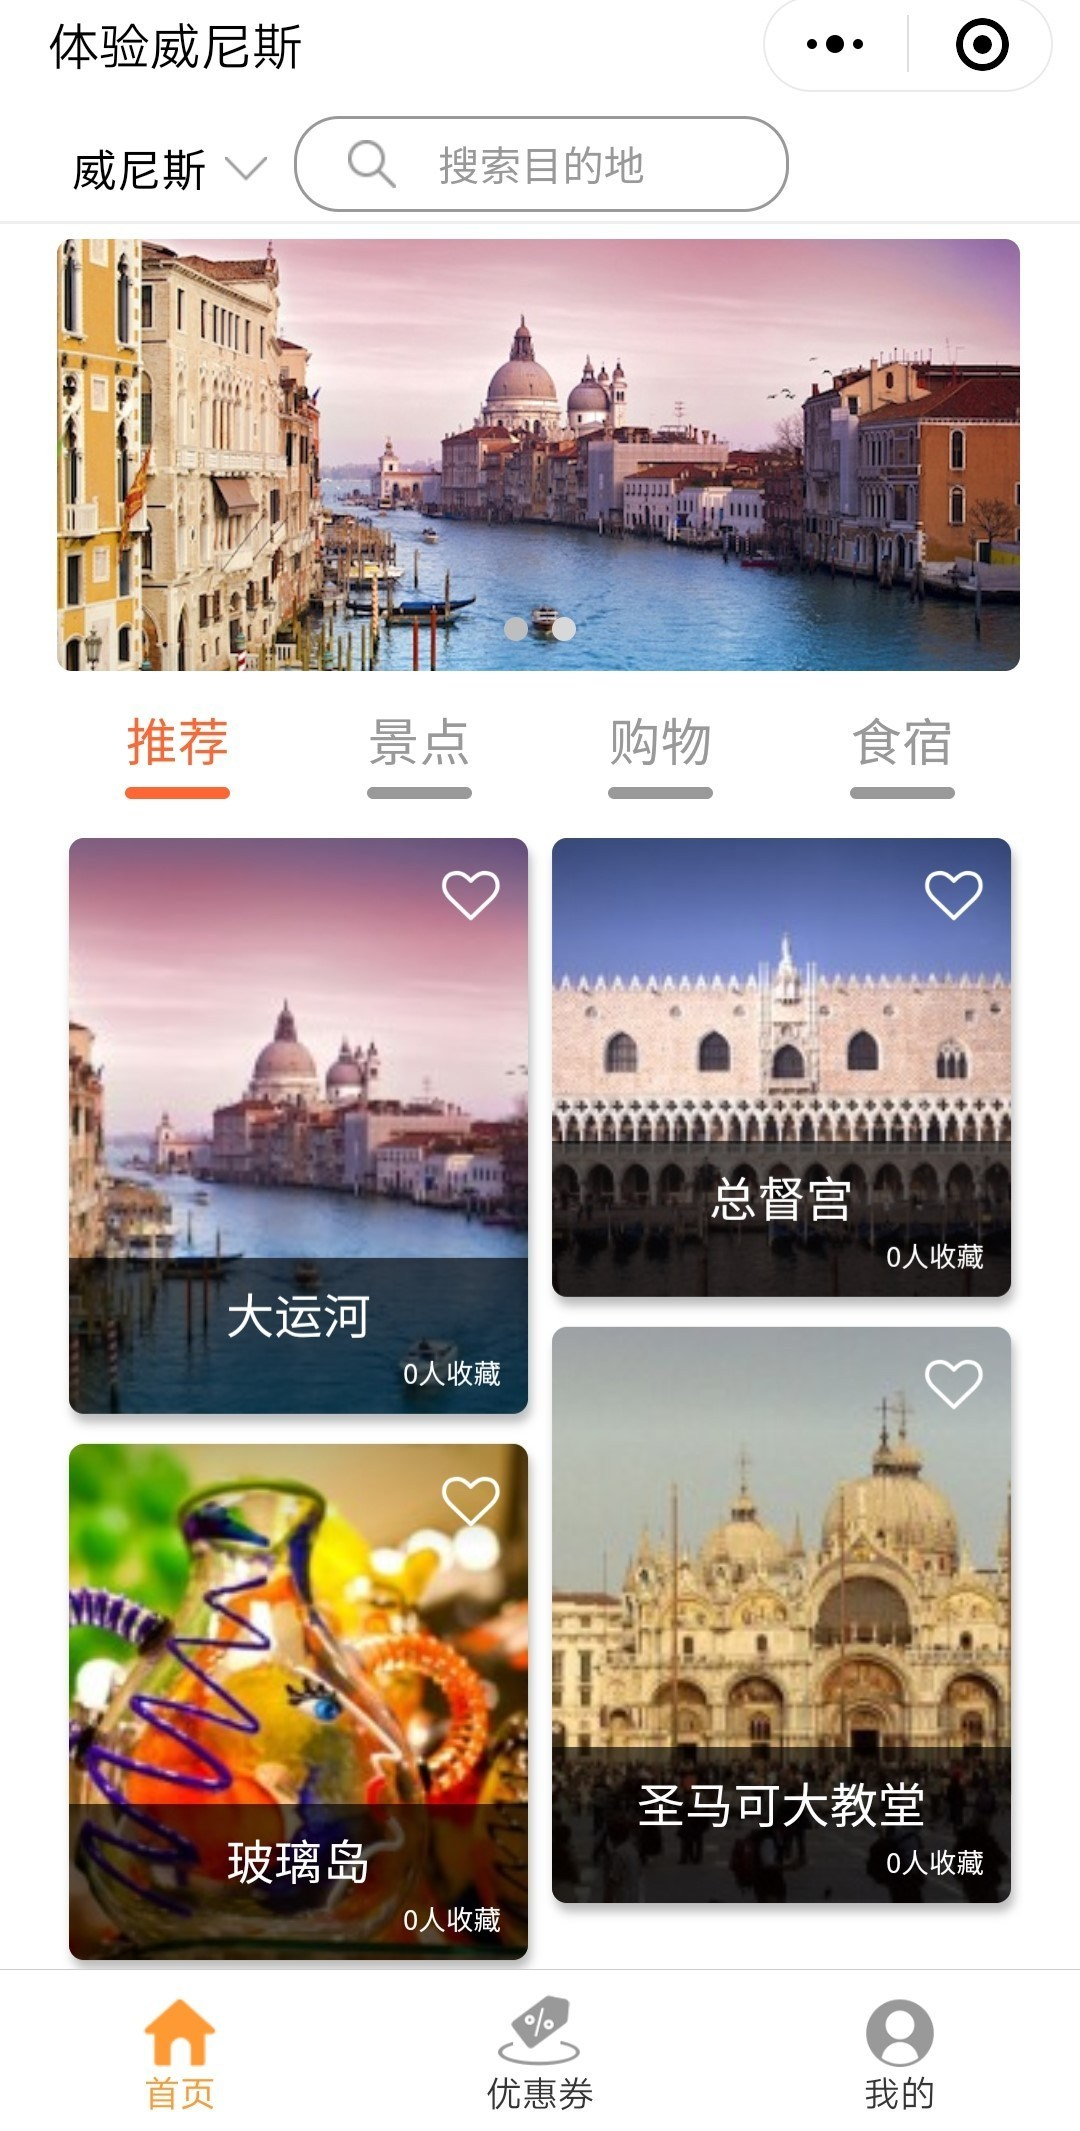 China-based tourism Venice Wechat mini-program